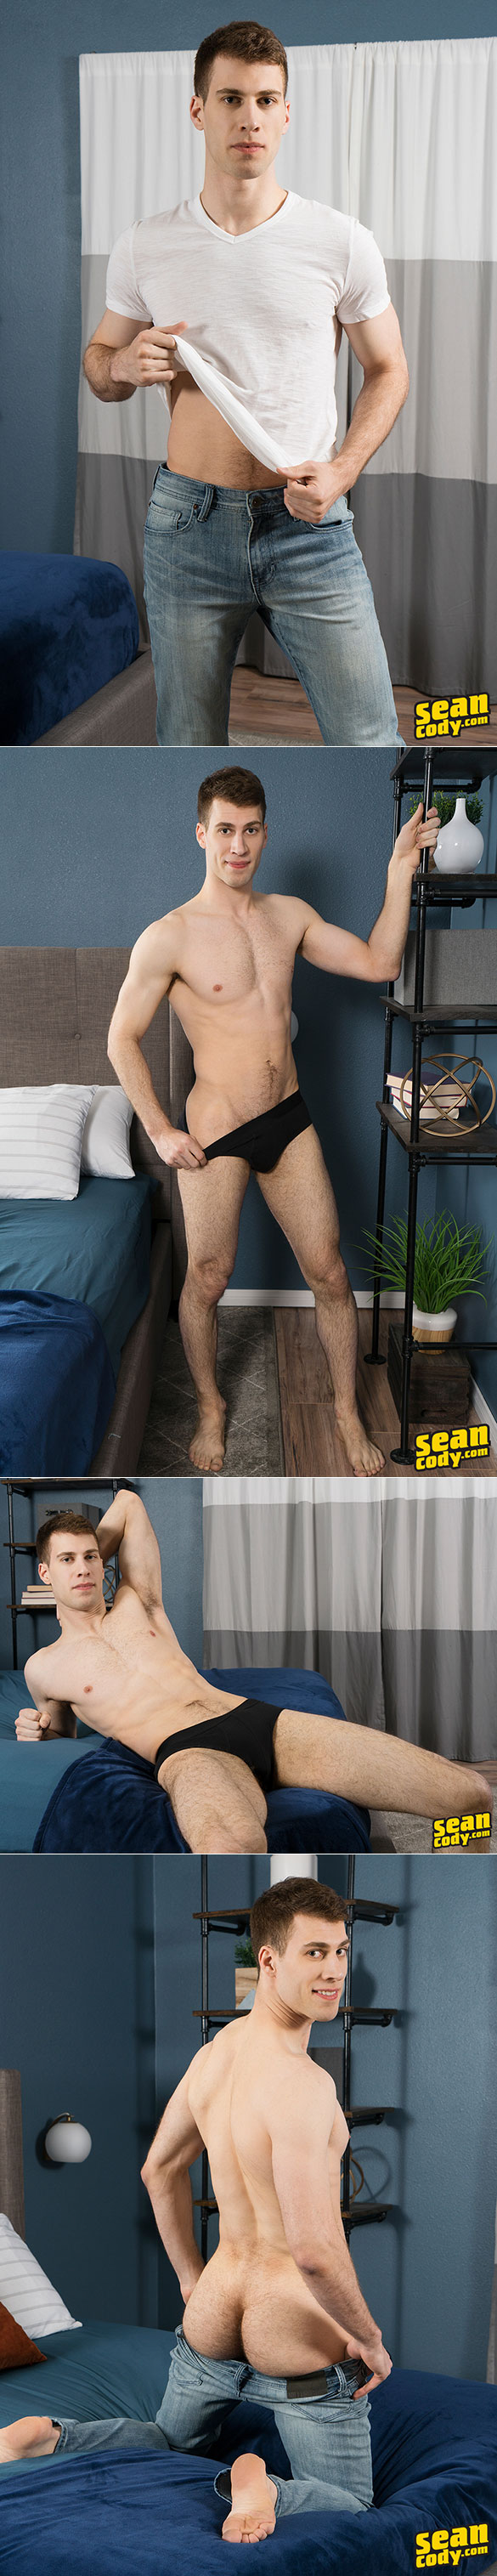 Sean Cody: Angelo shows off his big dick and busts a nut